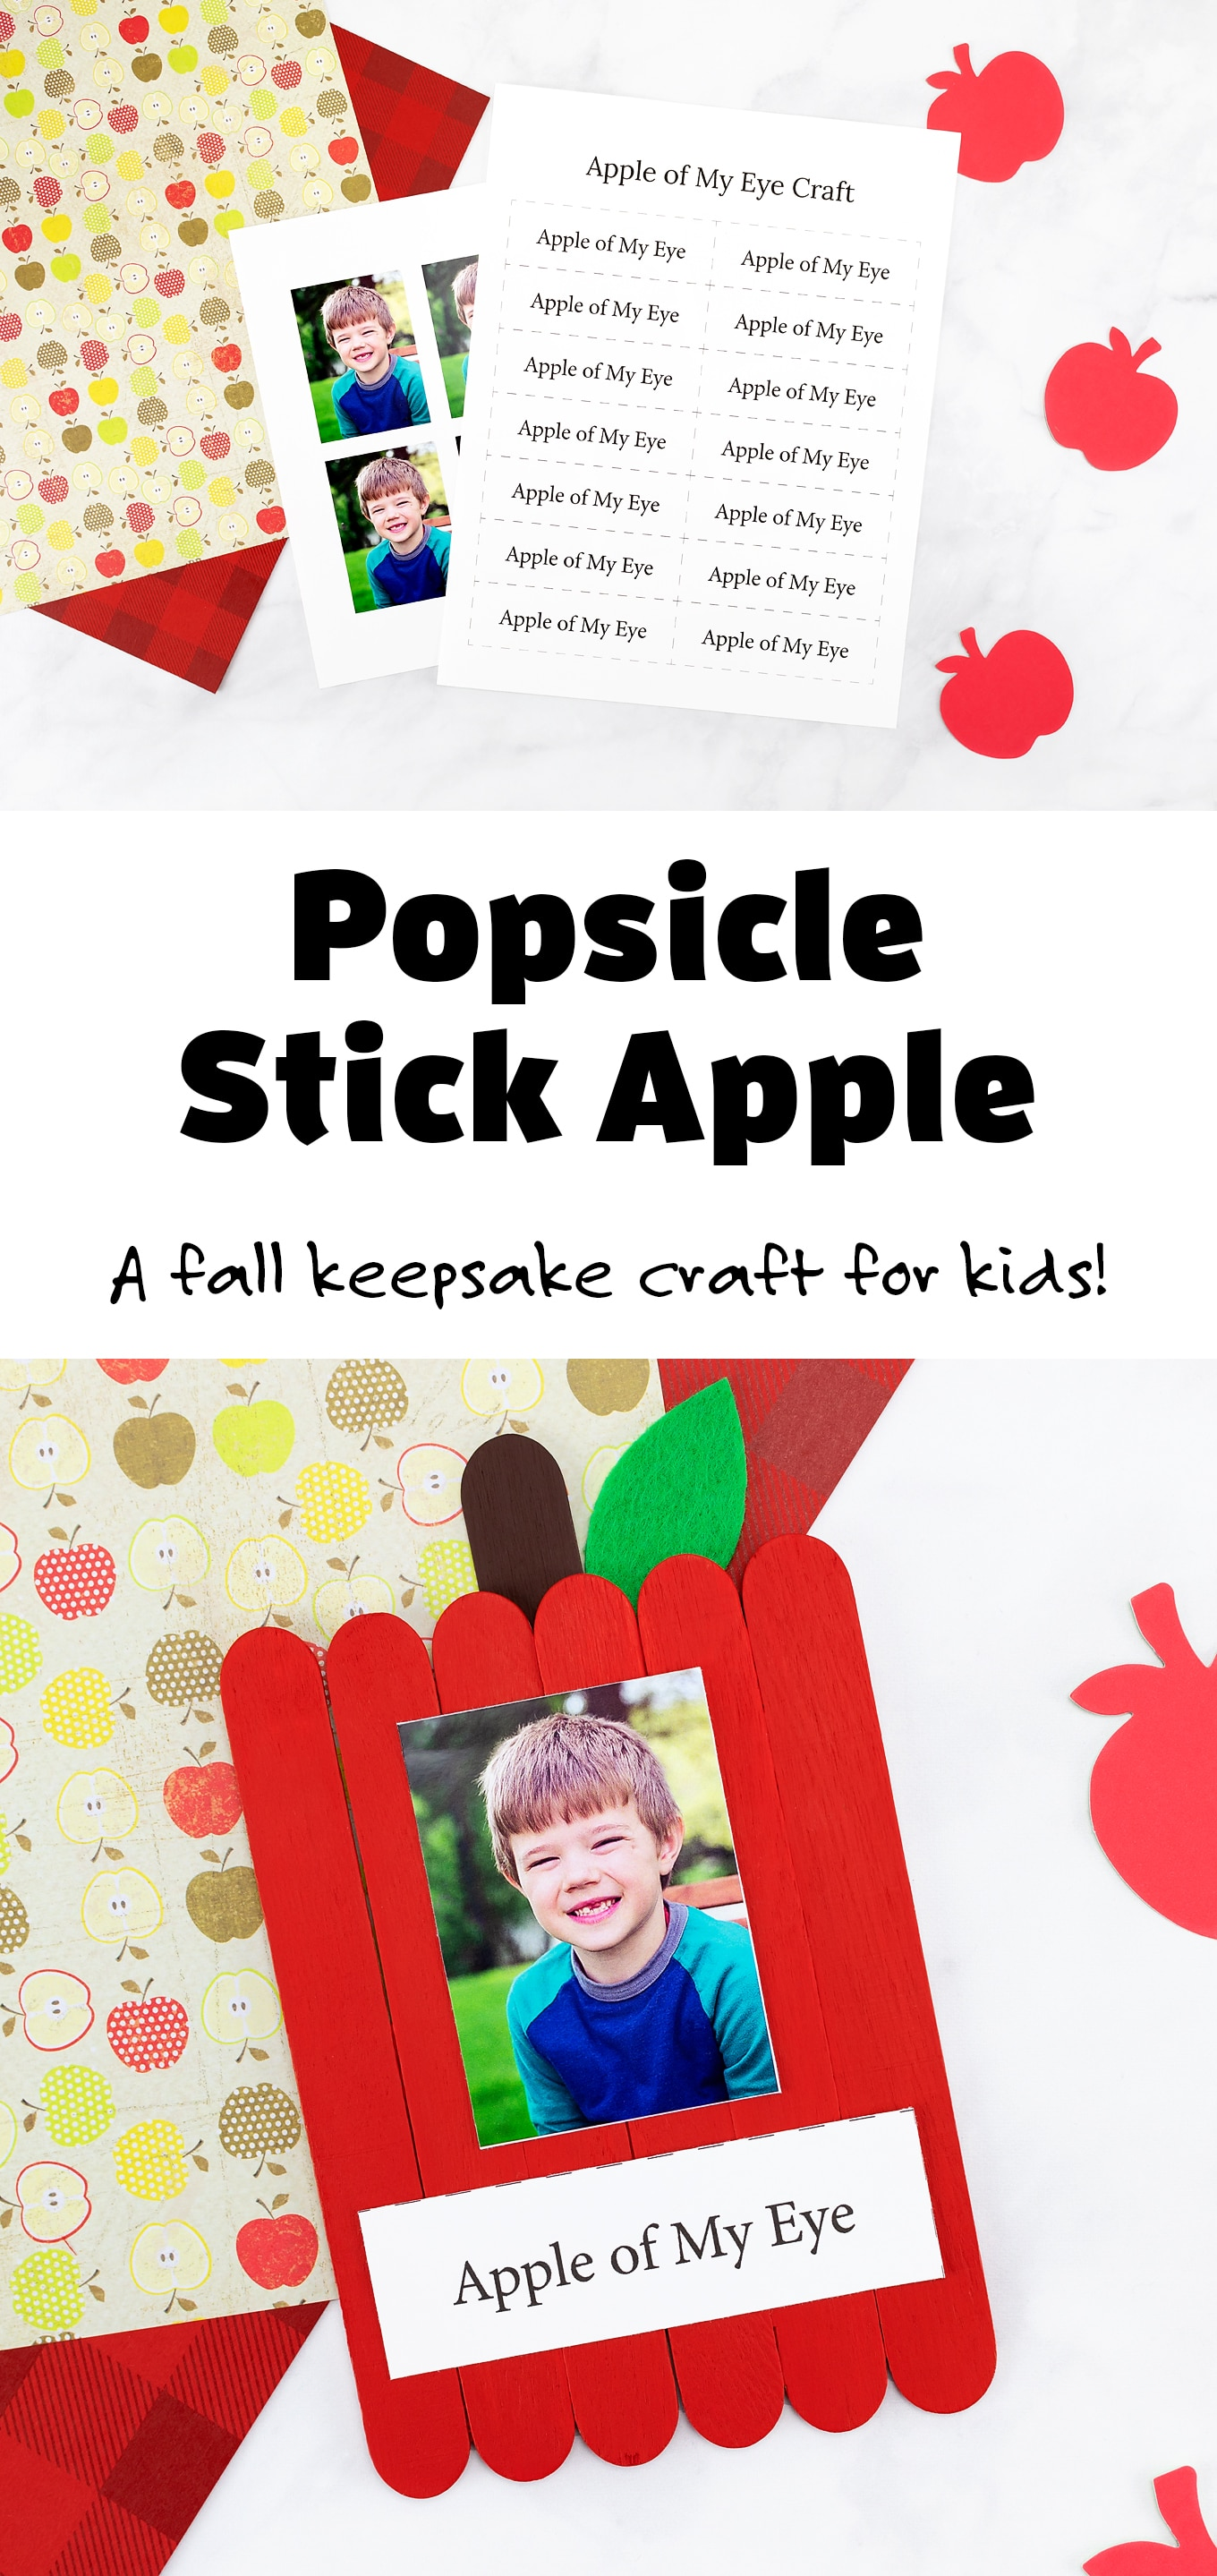 This easy and fun popsicle stick apple craft is the perfect keepsake for kids to make after visiting an apple orchard in the fall! #applecrafts #popsiclestickcraft #preschool via @firefliesandmudpies